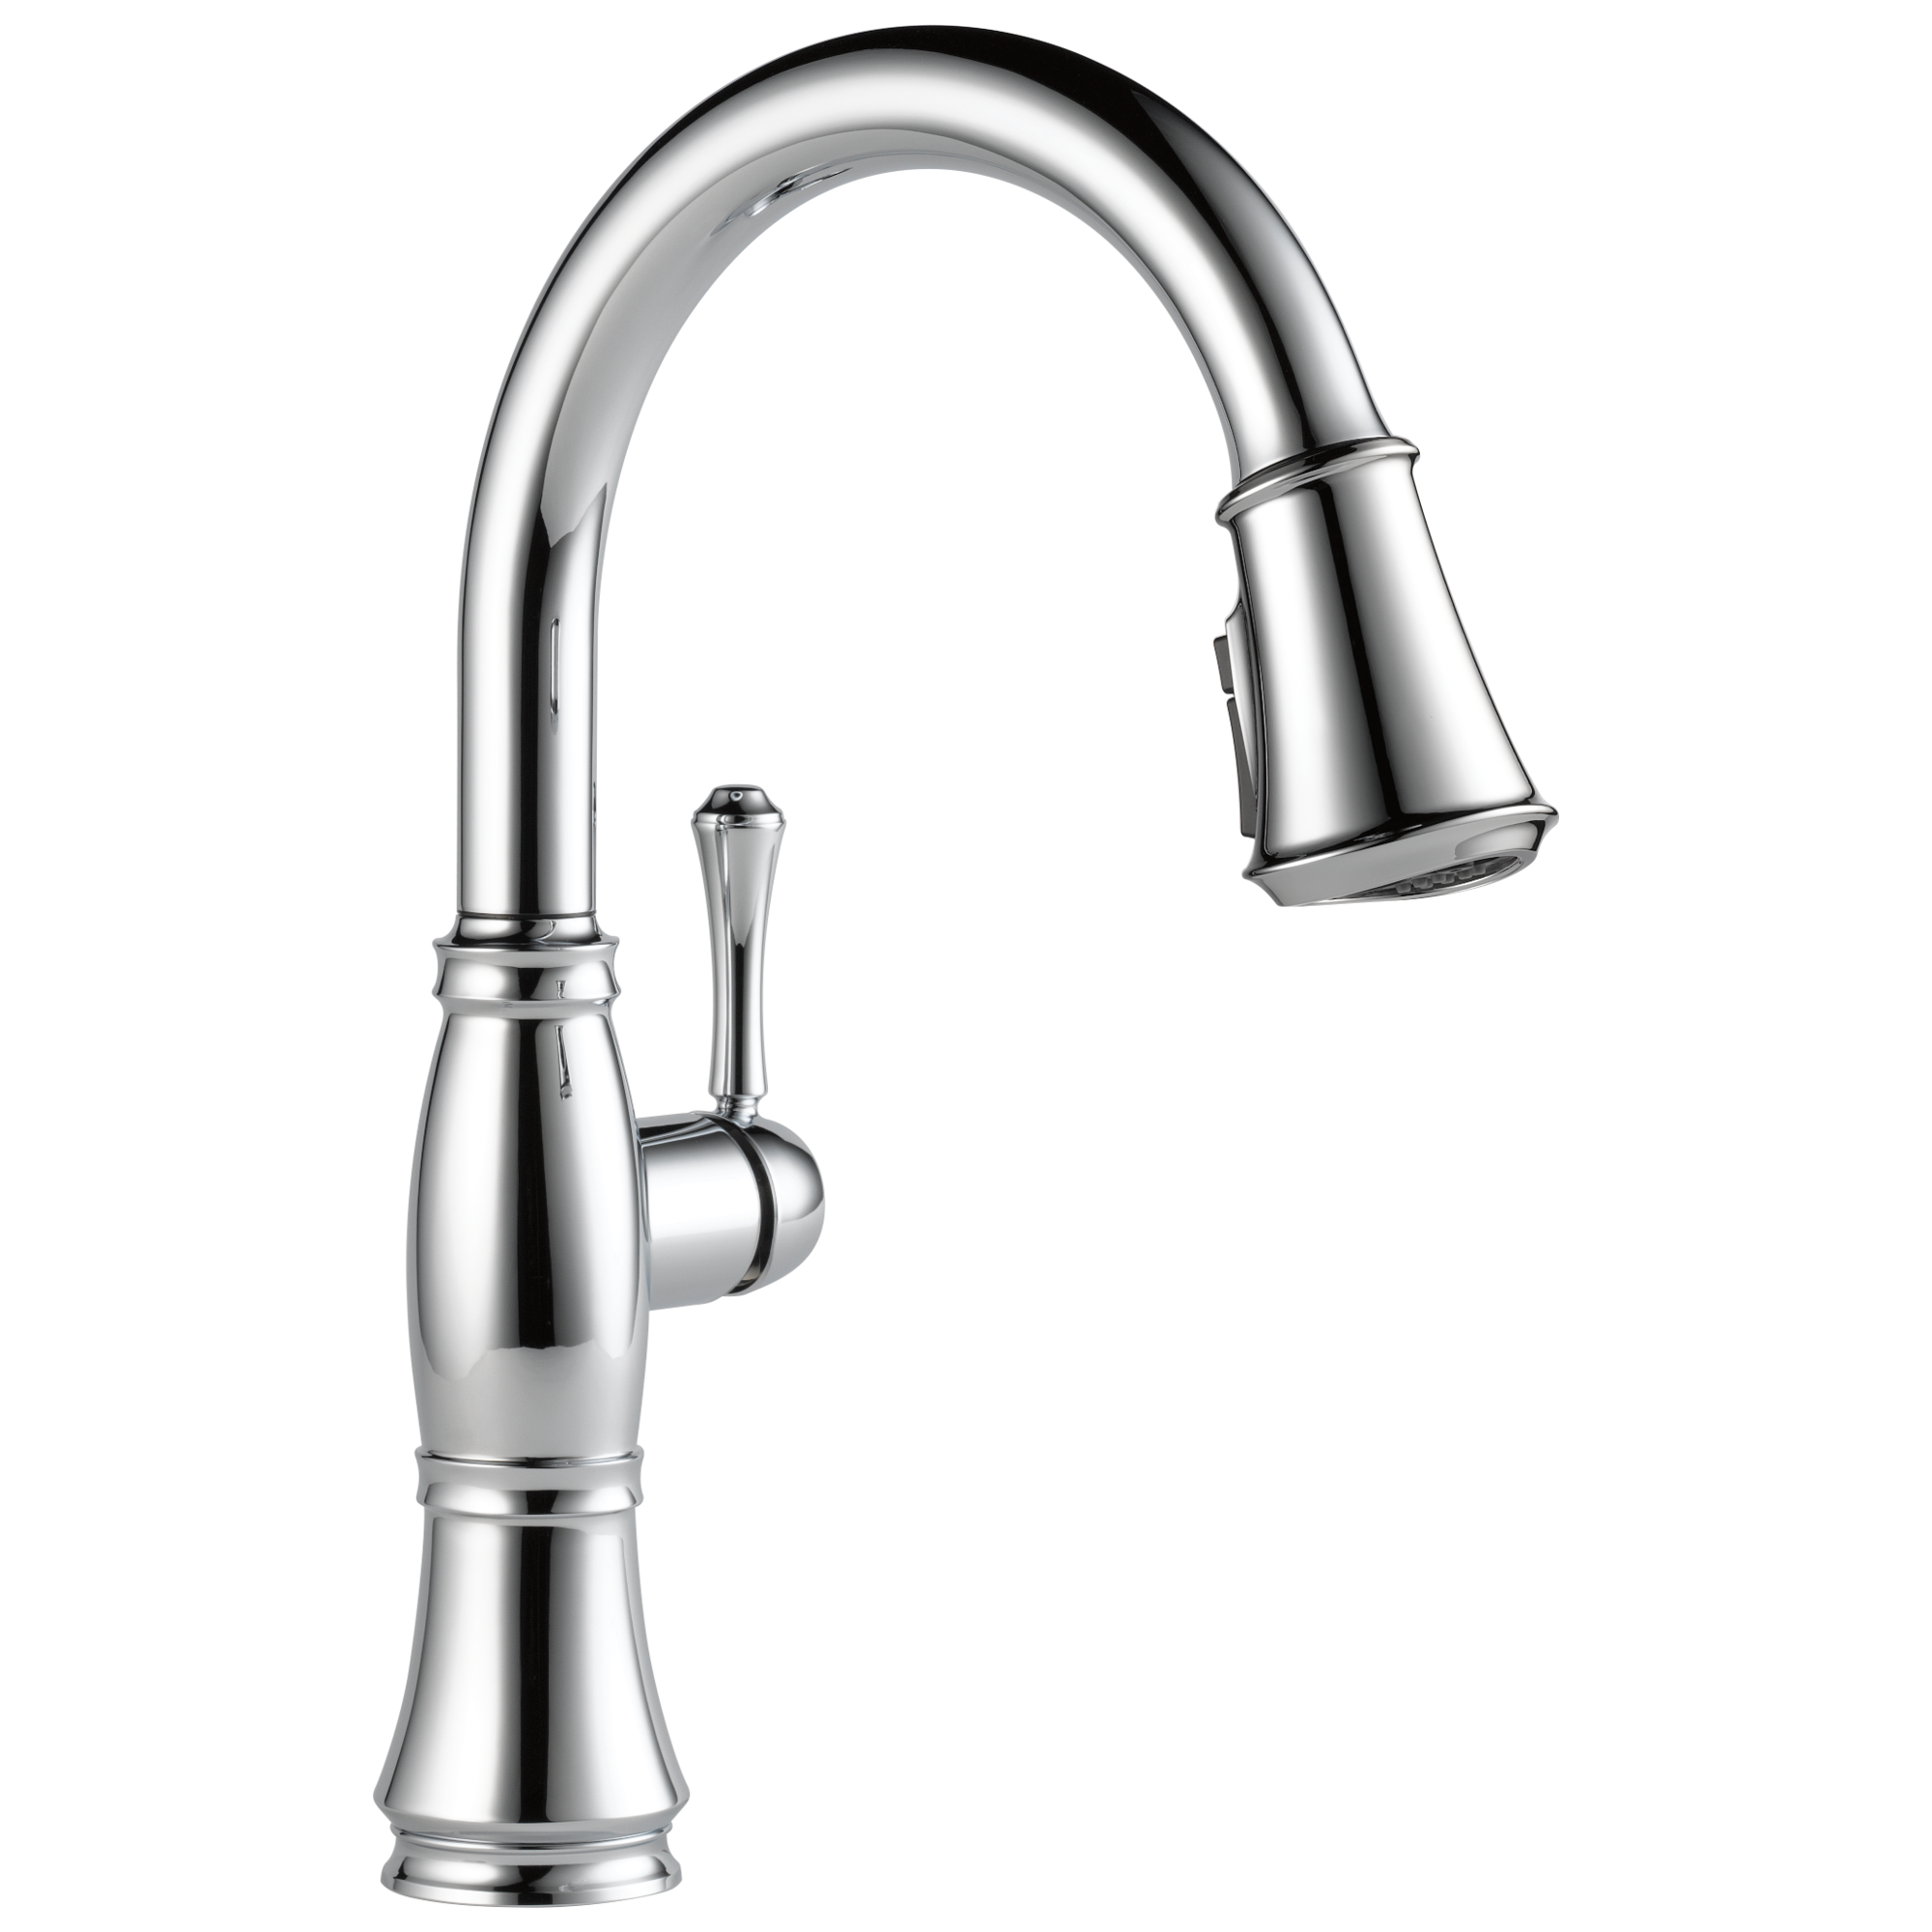 9197 dst single handle pull down kitchen faucet download high resolution image